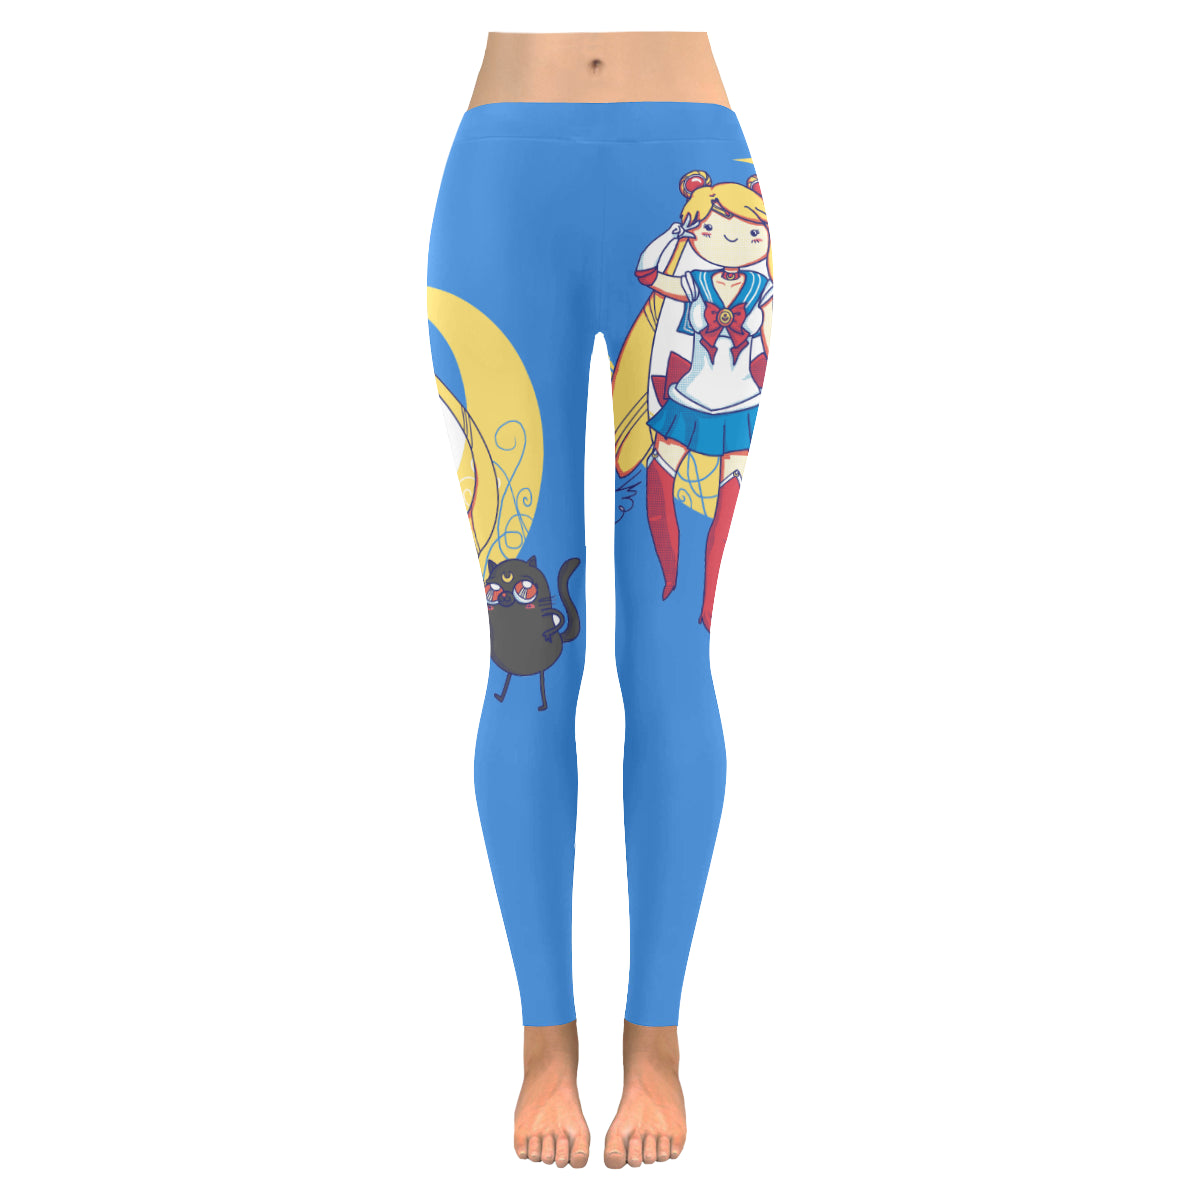 Adventuremon  Leggings